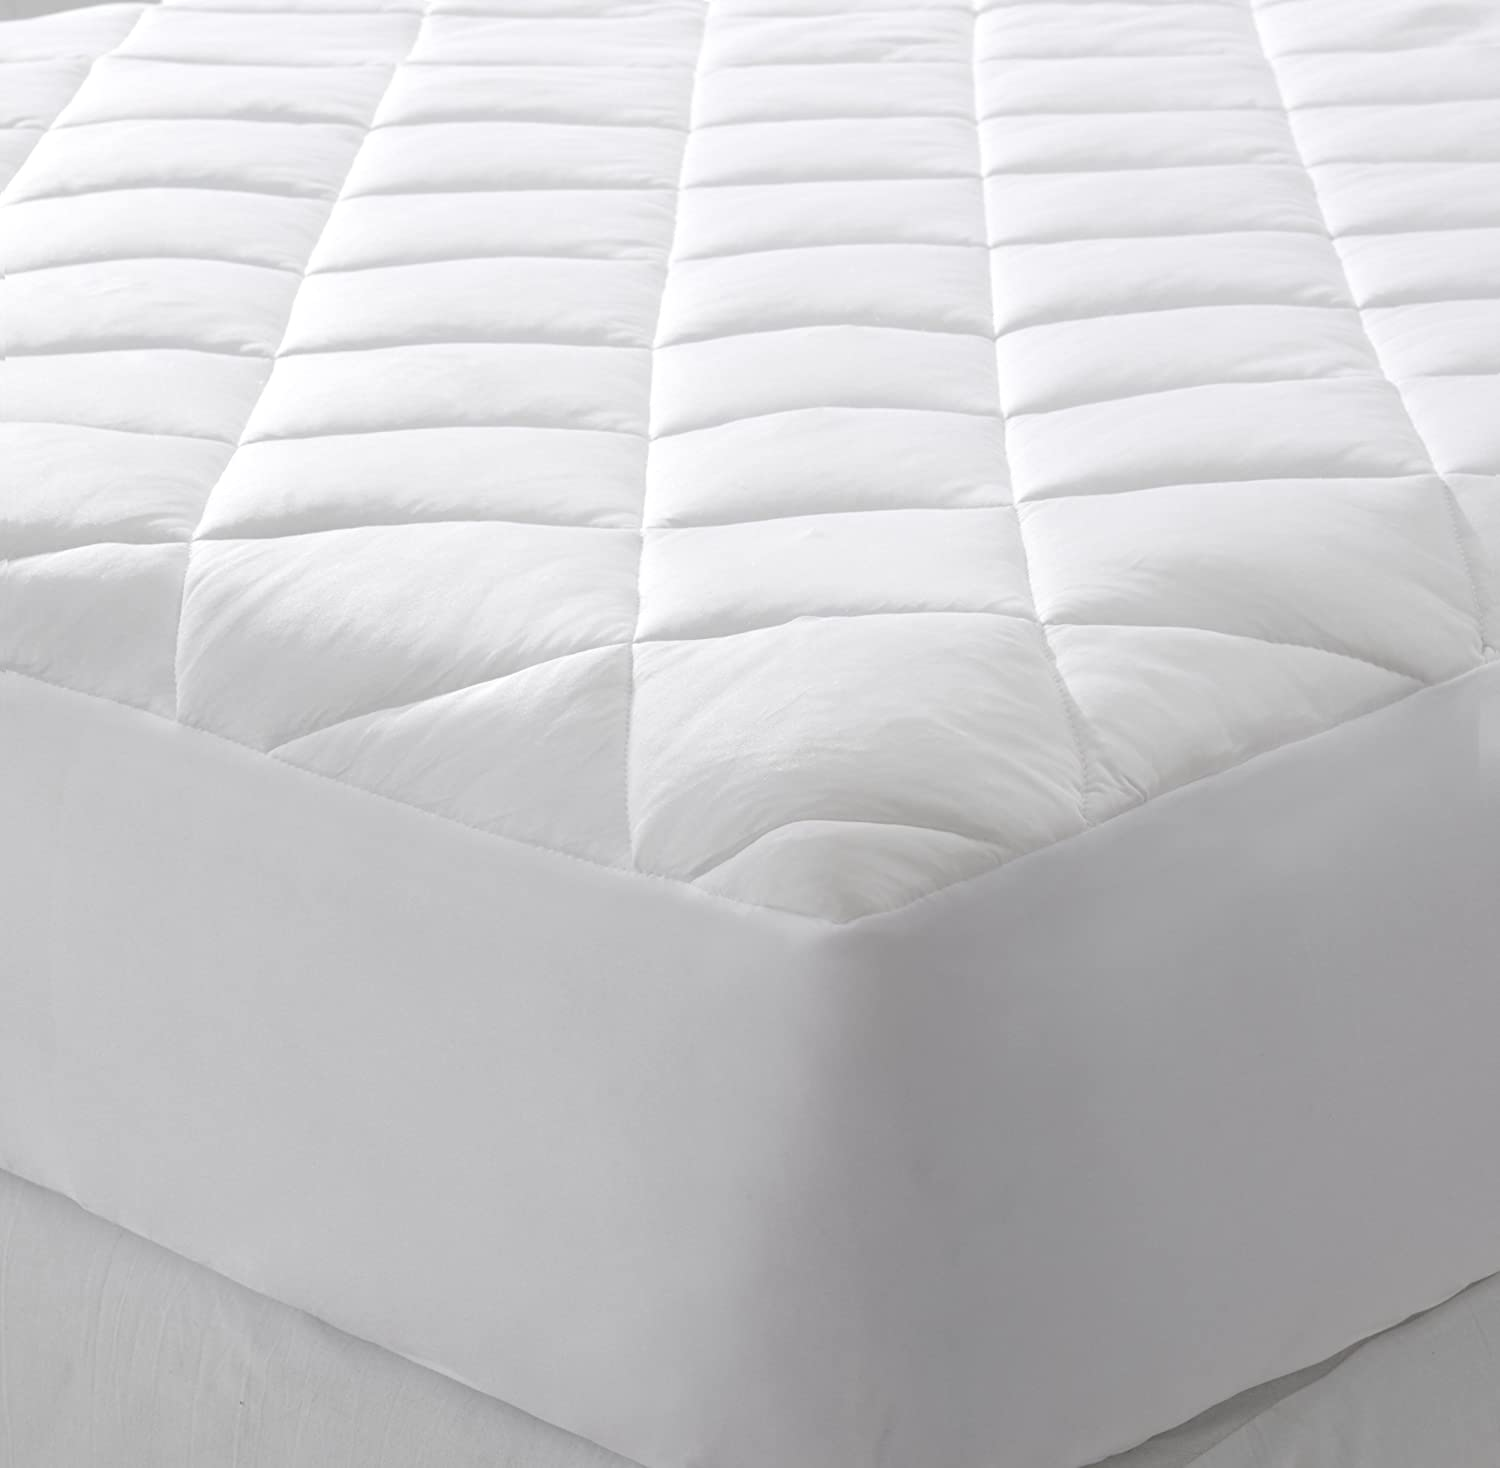 Extra Plush Hypoallergenic Topper with Cooling Fibers That Absorb and Redistribute Body Heat Queen, White 100/% Microfiber Shell Great Bay Home Cooling Mattress Pad